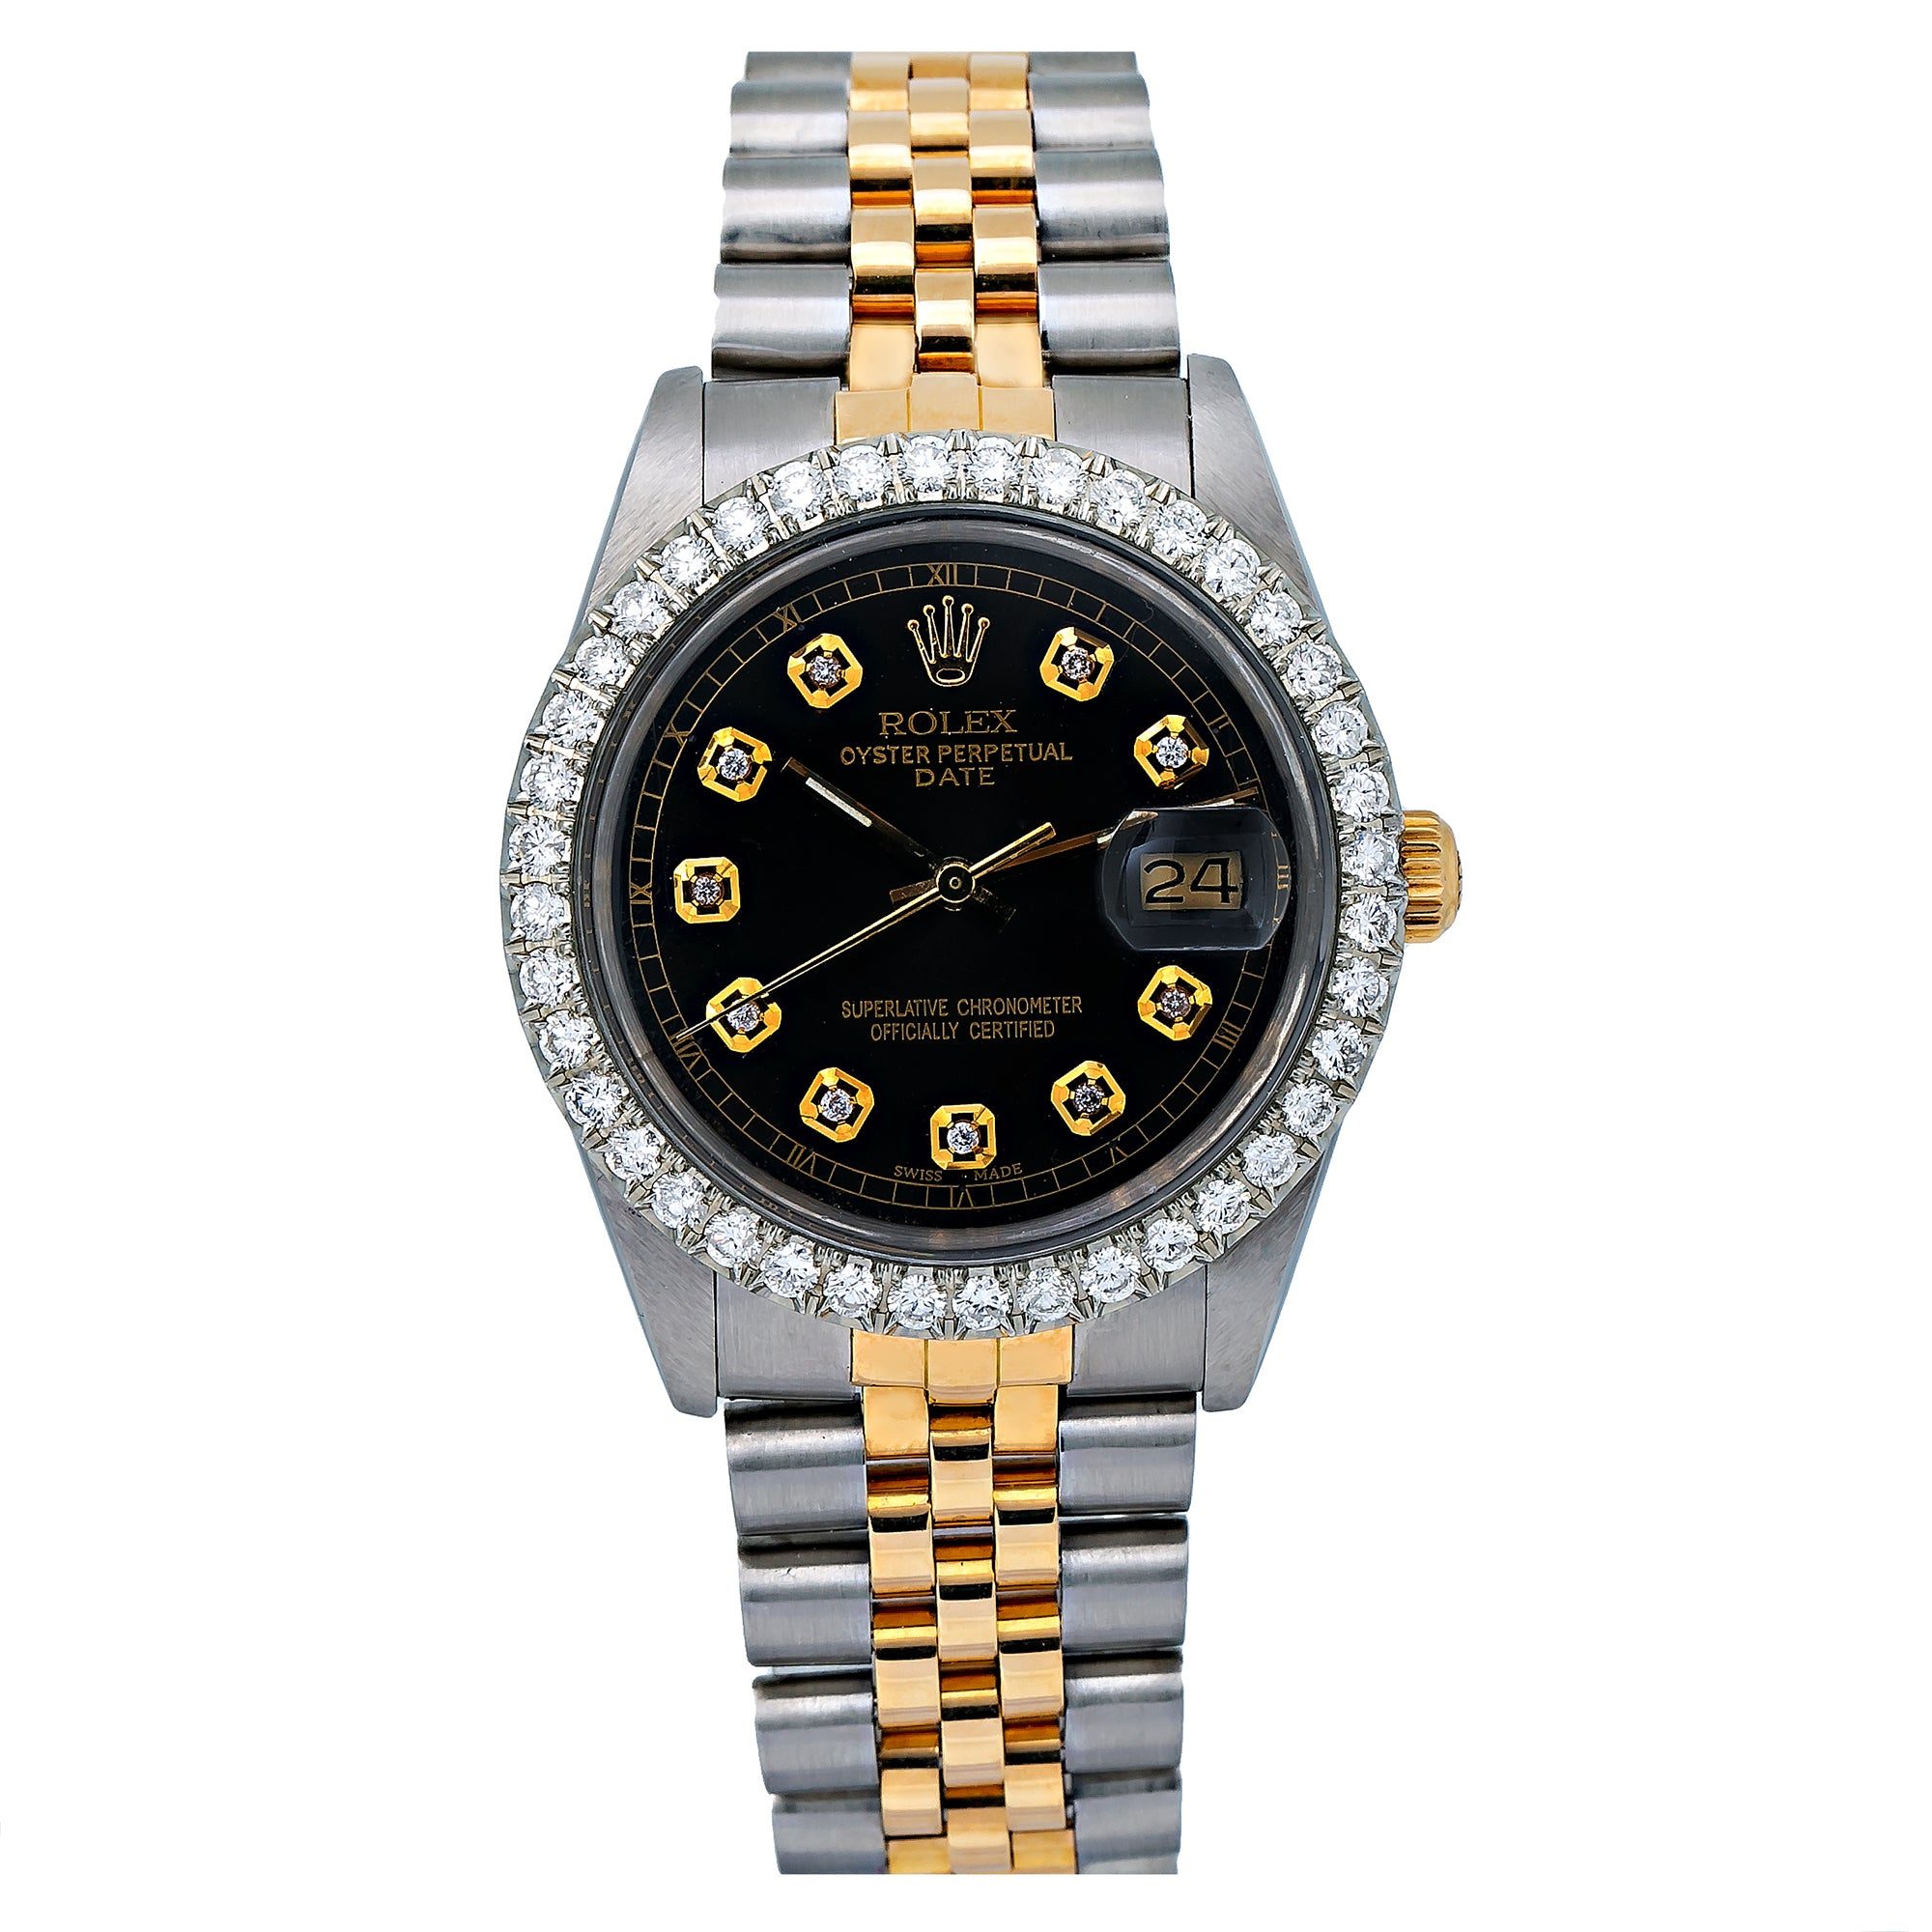 Rolex Oyster Perpetual Date 15053 34MM Black Diamond Dial With 1.30 CT Diamonds